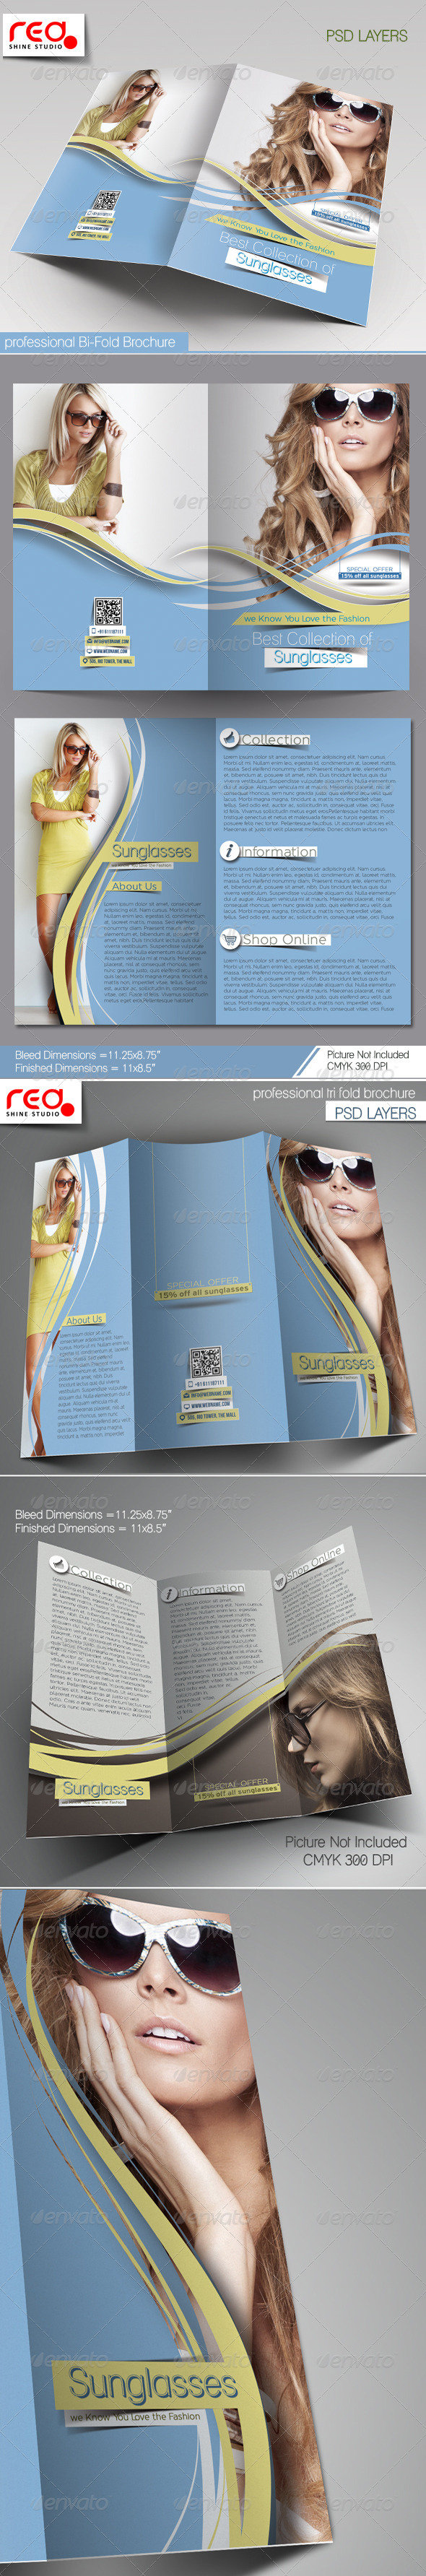 SunGlasses Fashion Store Brochure Template - Catalogs Brochures